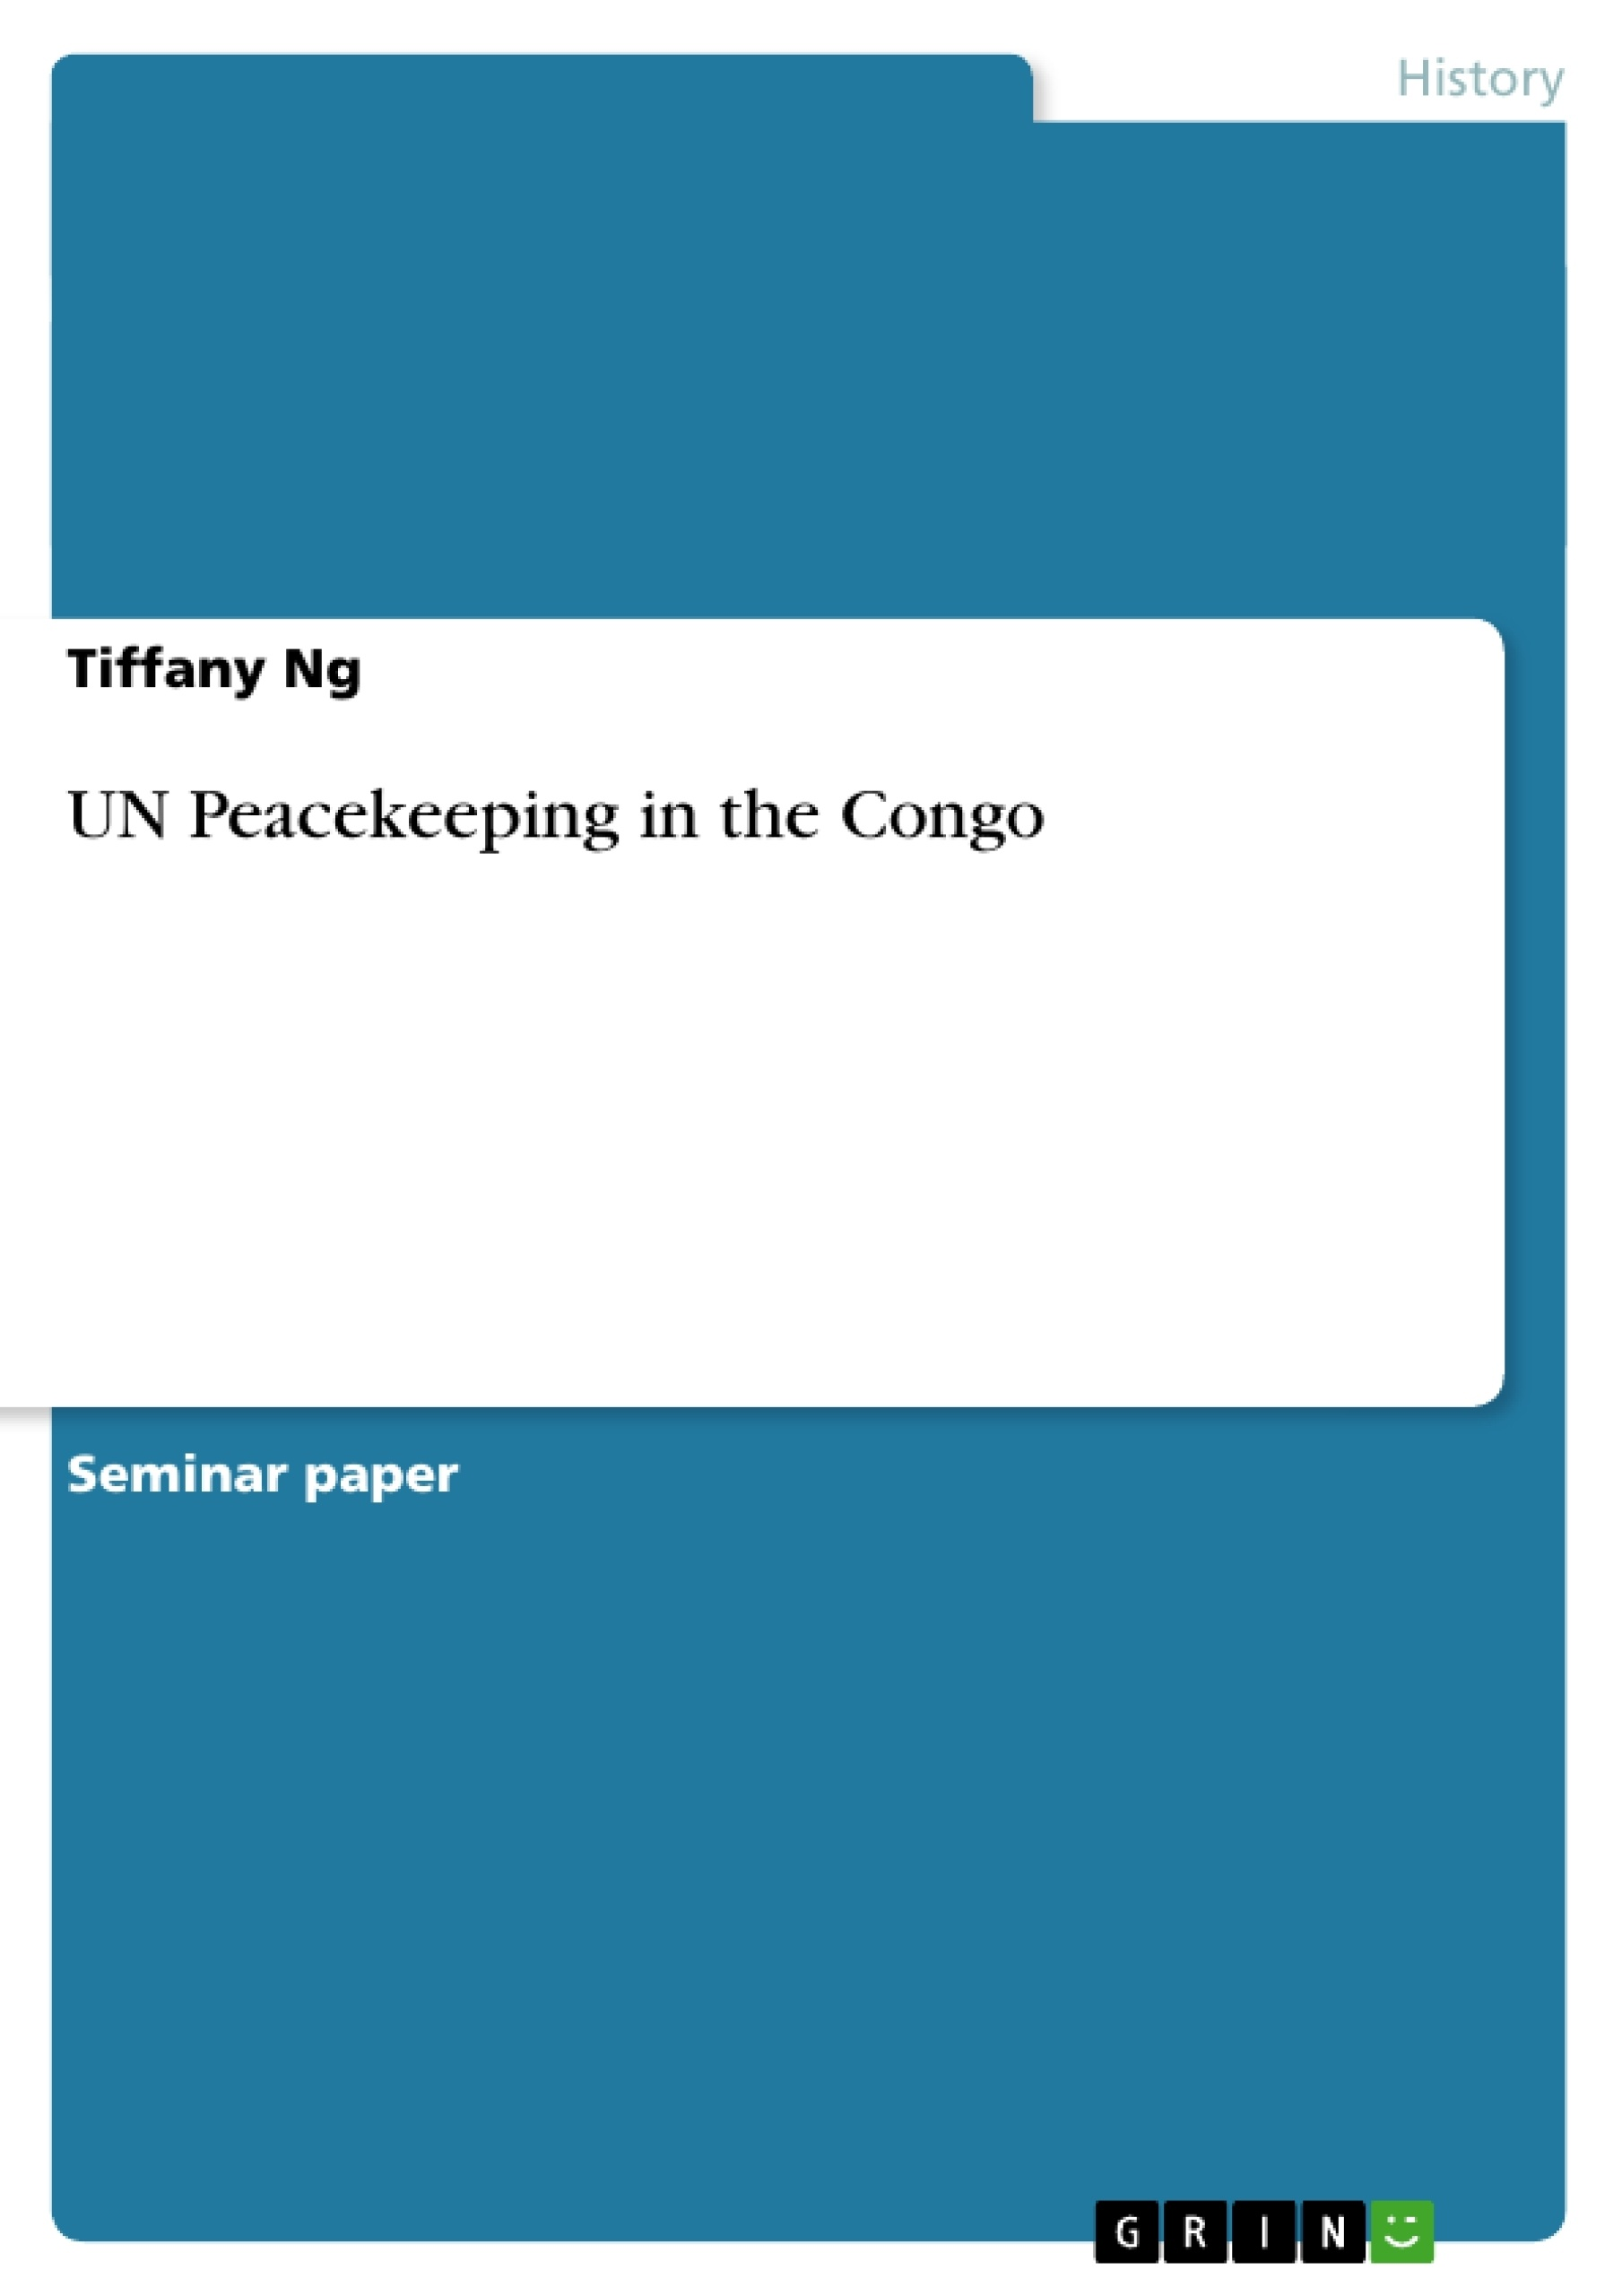 peacekeeping essay There is no need to create a global plan when writing your excellent essay on world peace everything starts with smaller steps you can describe in essays.